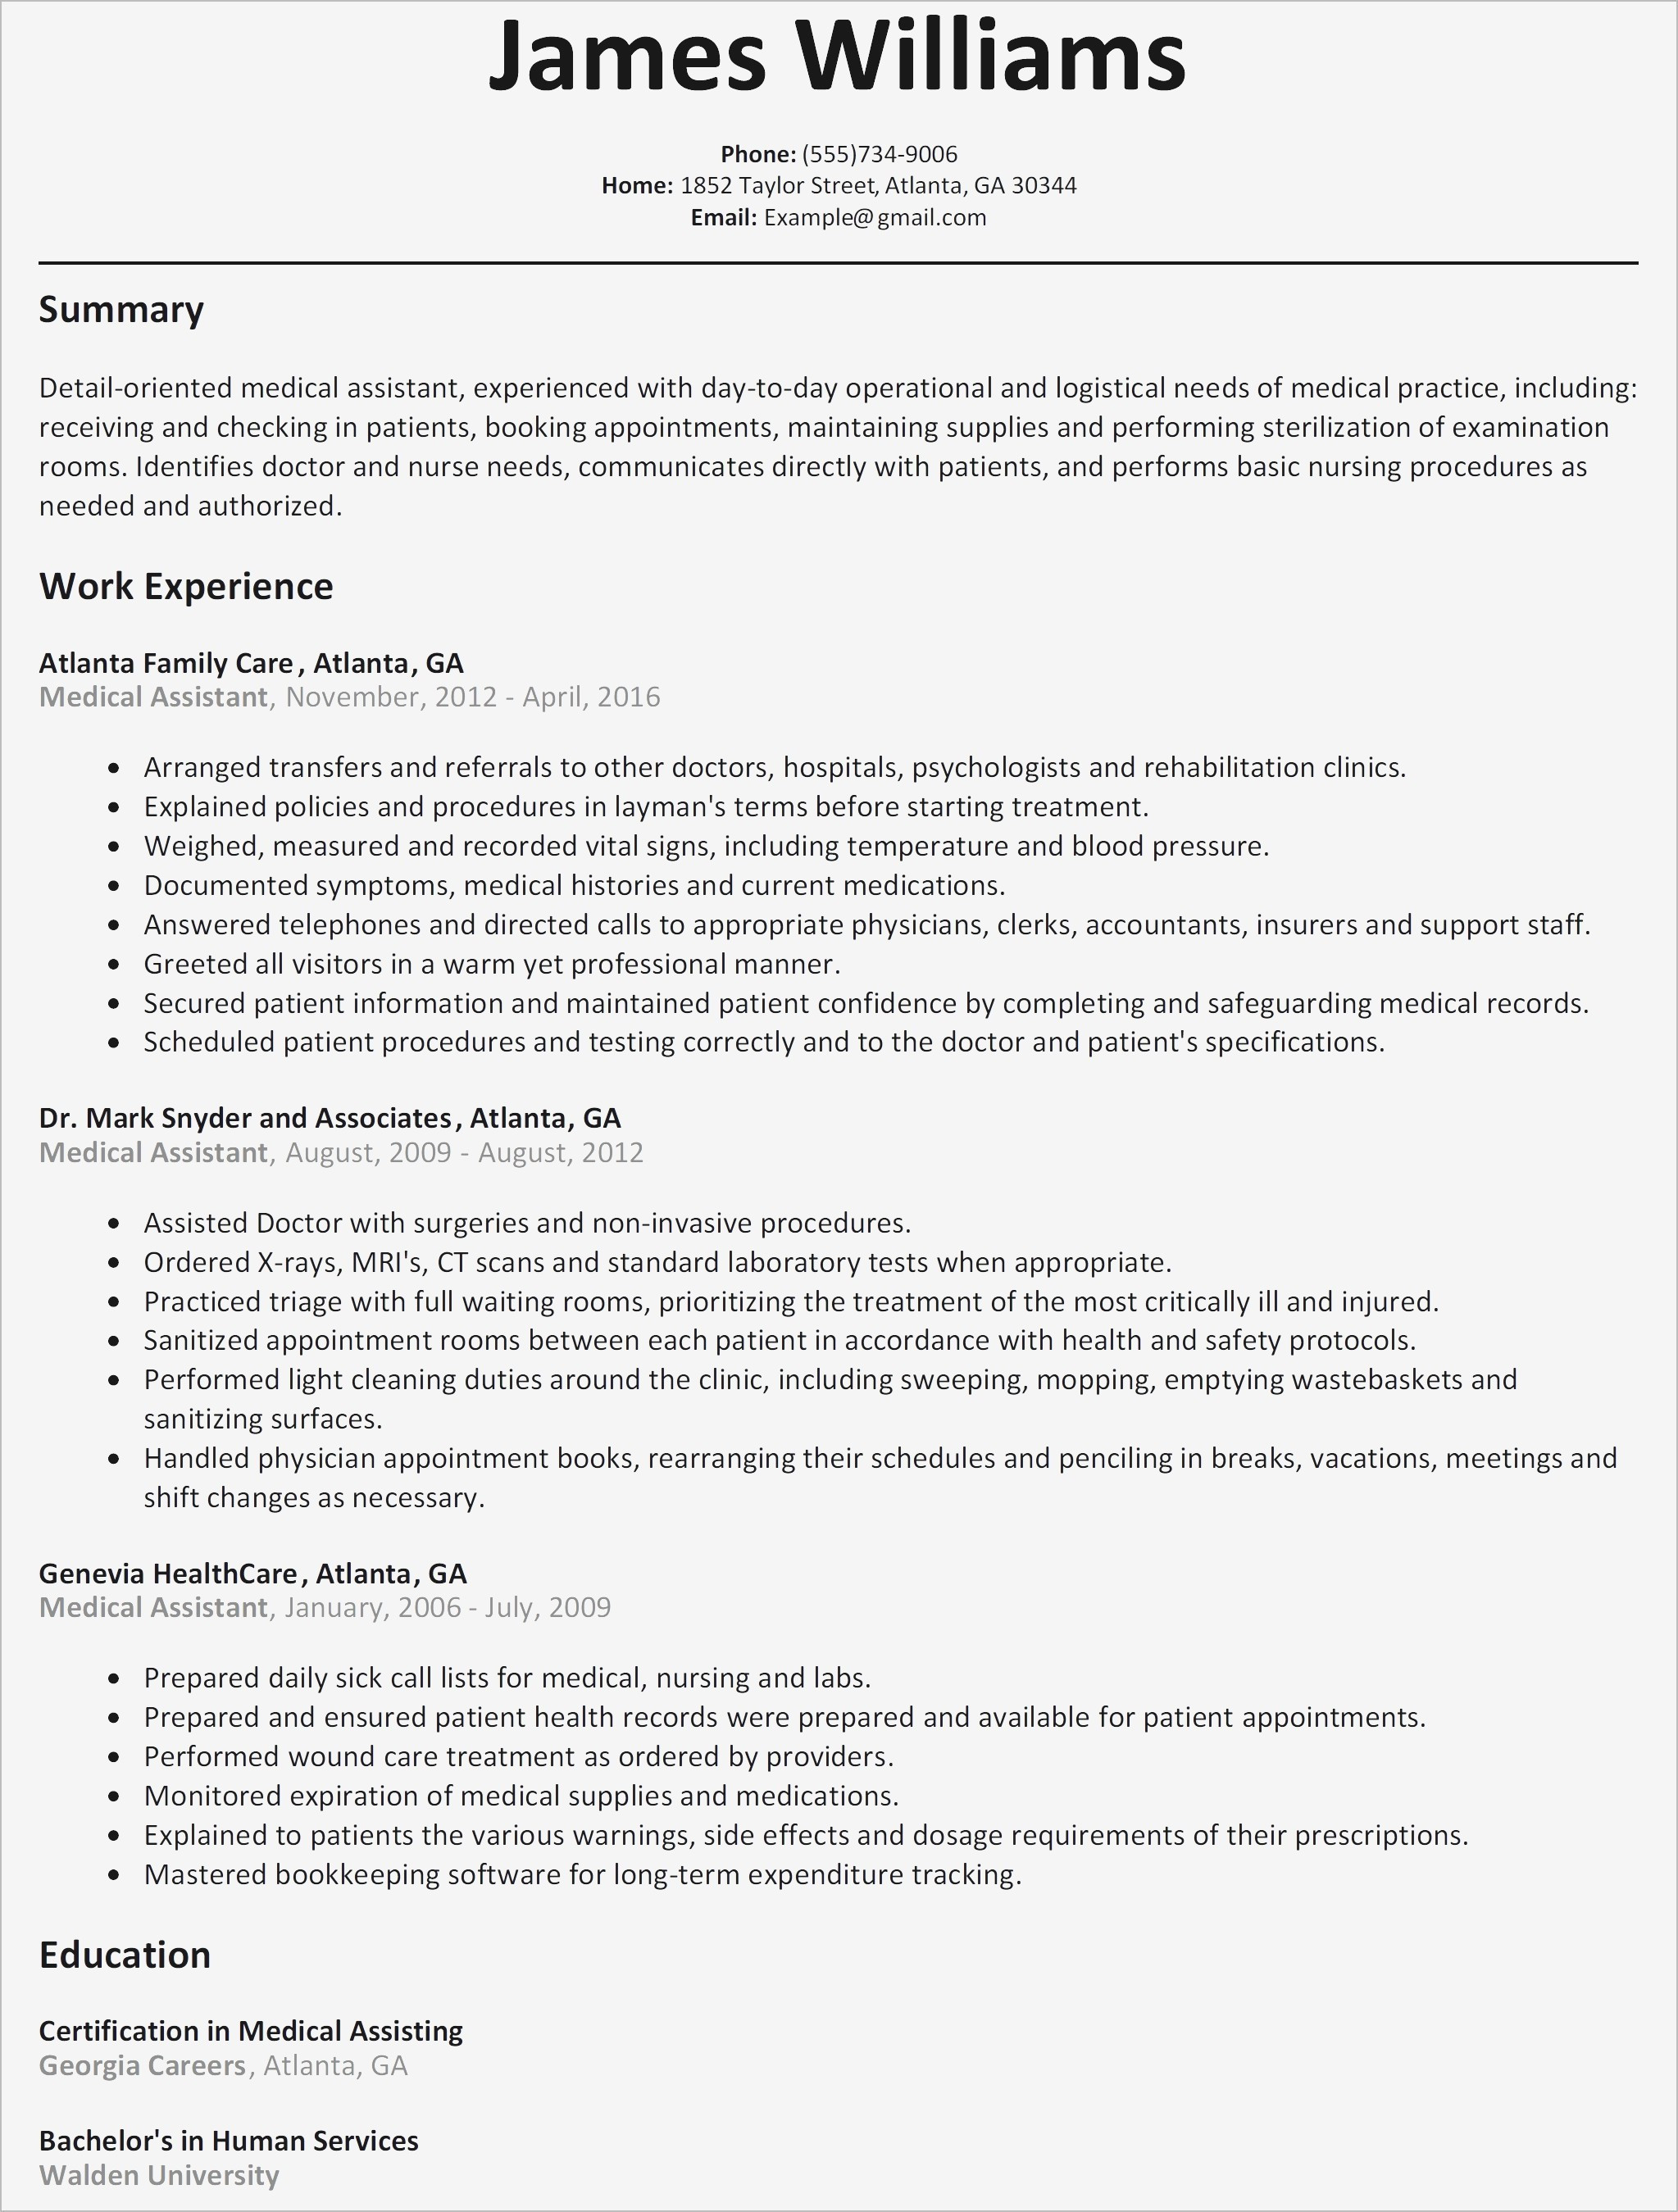 Laborer Resume Template - Fresh Resume for Construction Worker